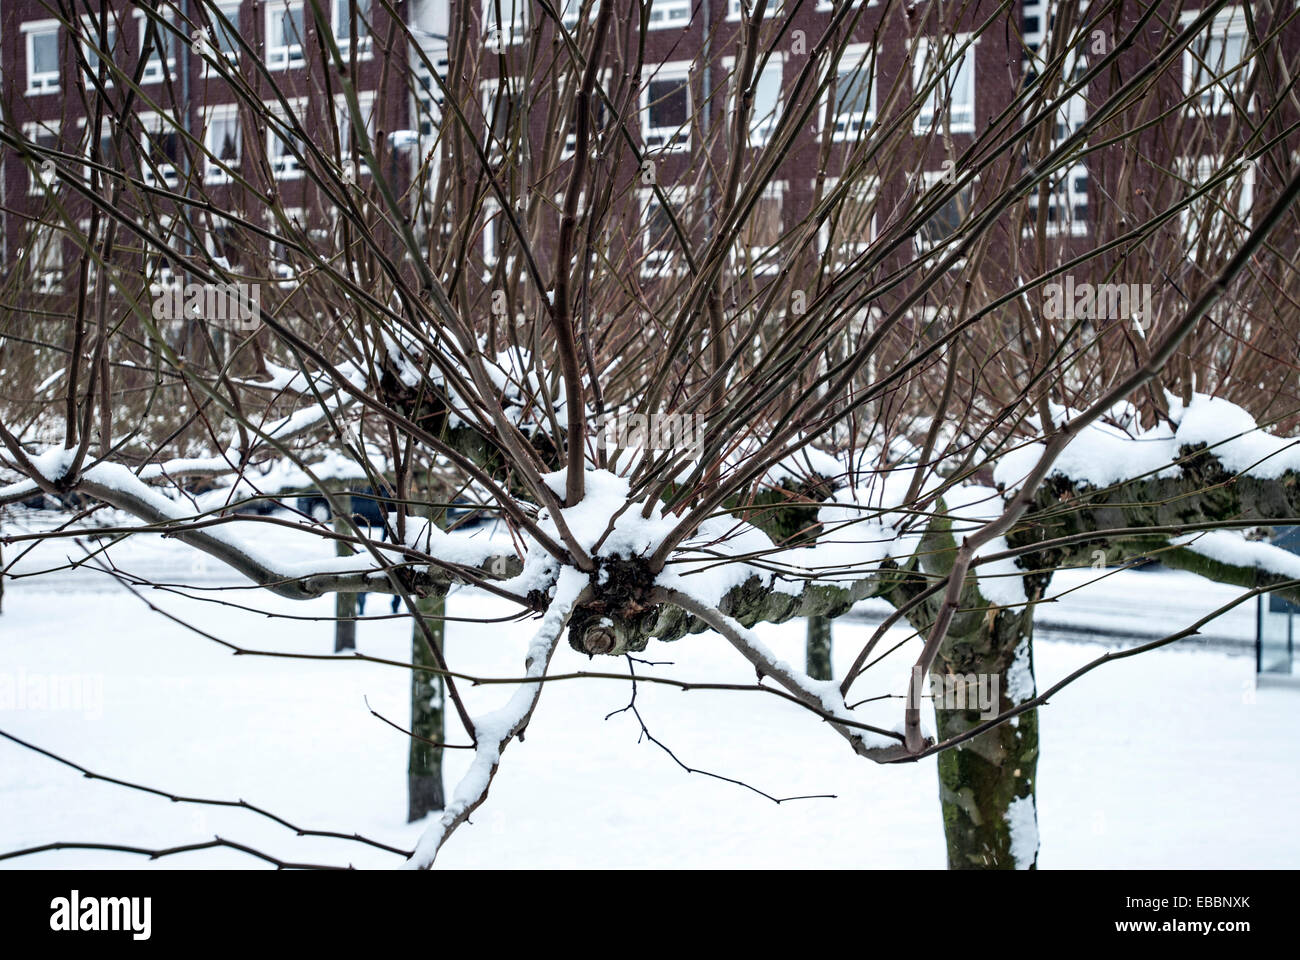 Strange trees covered with snow with apartment building in the background - Stock Image